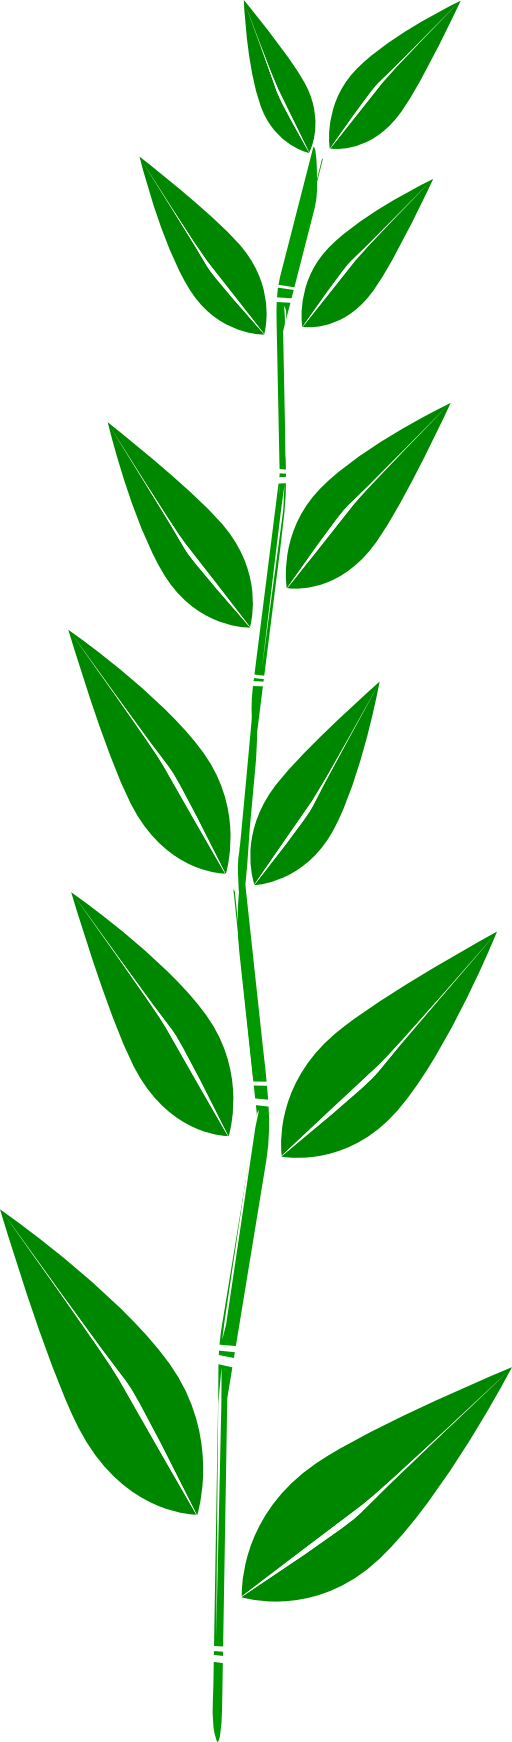 Bamboo Leaf Clipart Royalty Free Public Domain Clipart